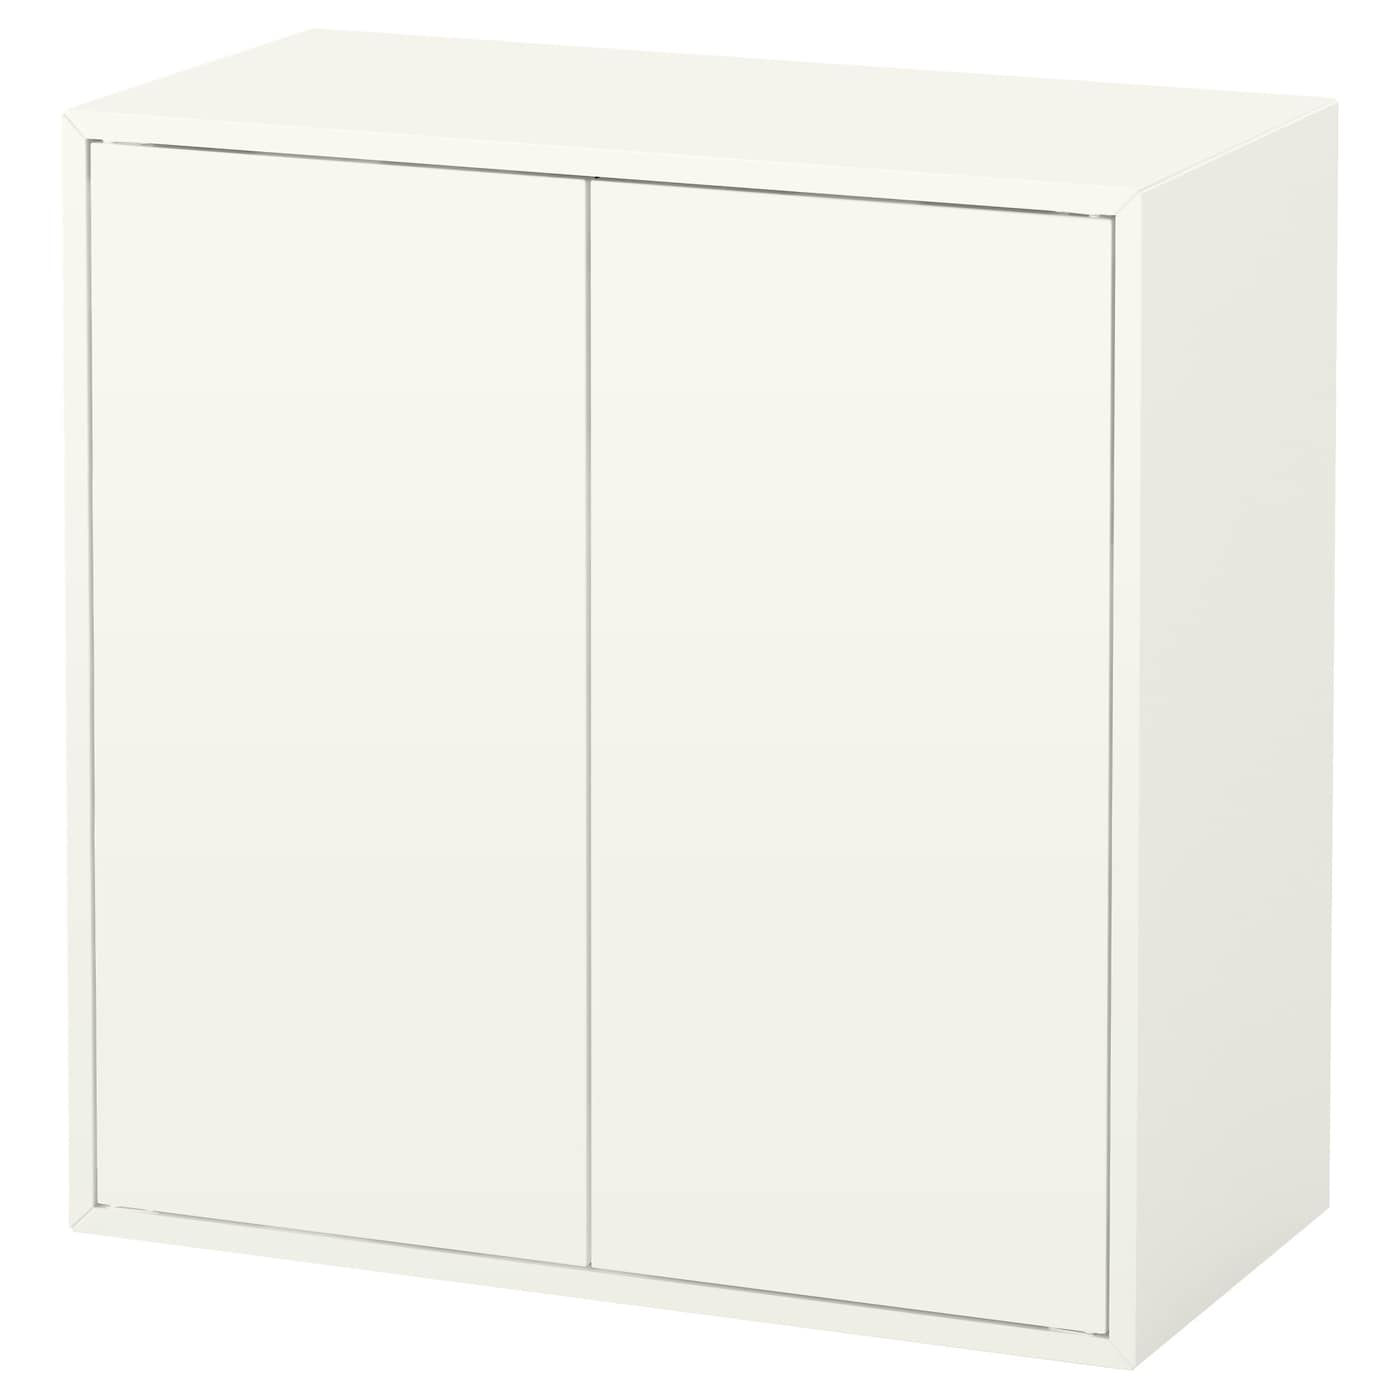 Eket cabinet w 2 doors and 1 shelf white 70x35x70 cm ikea for Kommode 140 x 100